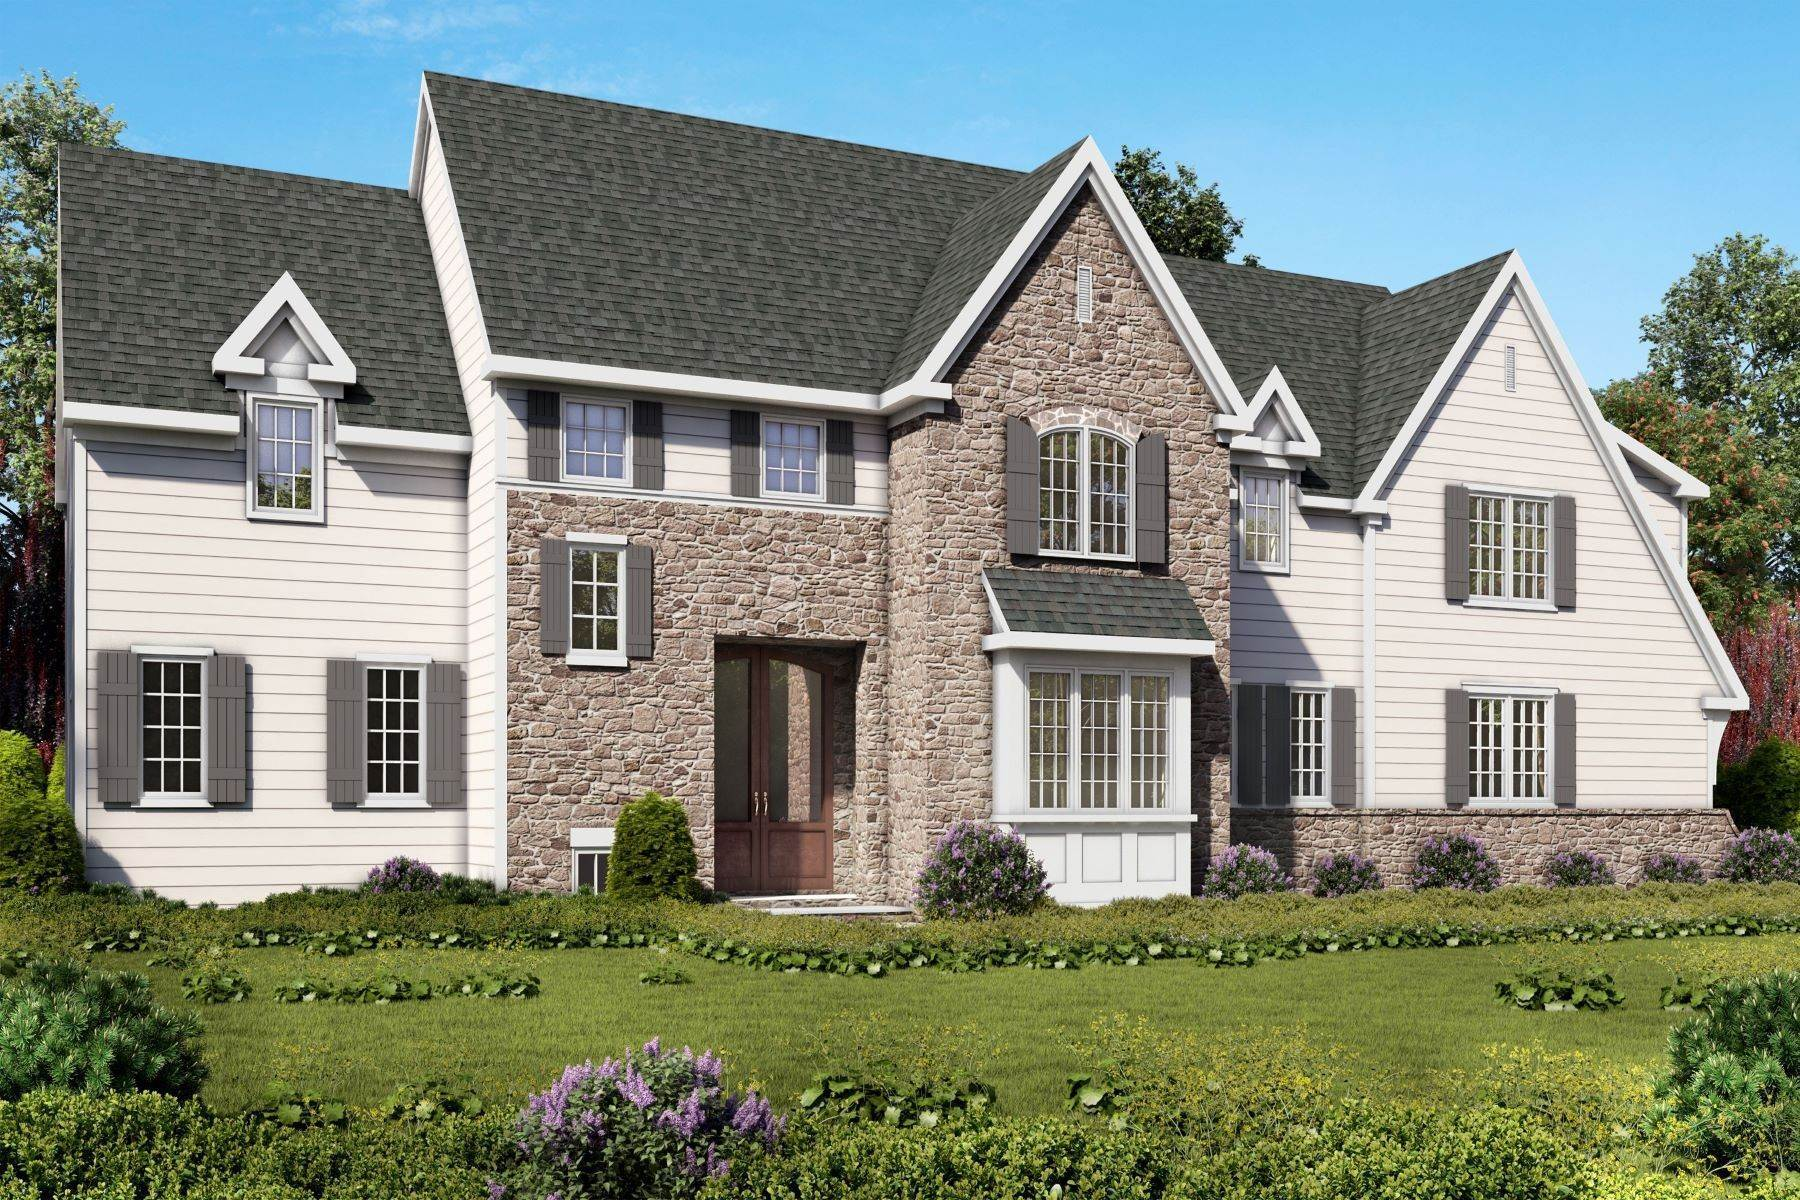 2. Single Family Homes for Sale at Pinnacle at Rolling Hills 14 SHULL FARM RD Erwinna, Pennsylvania 18920 United States